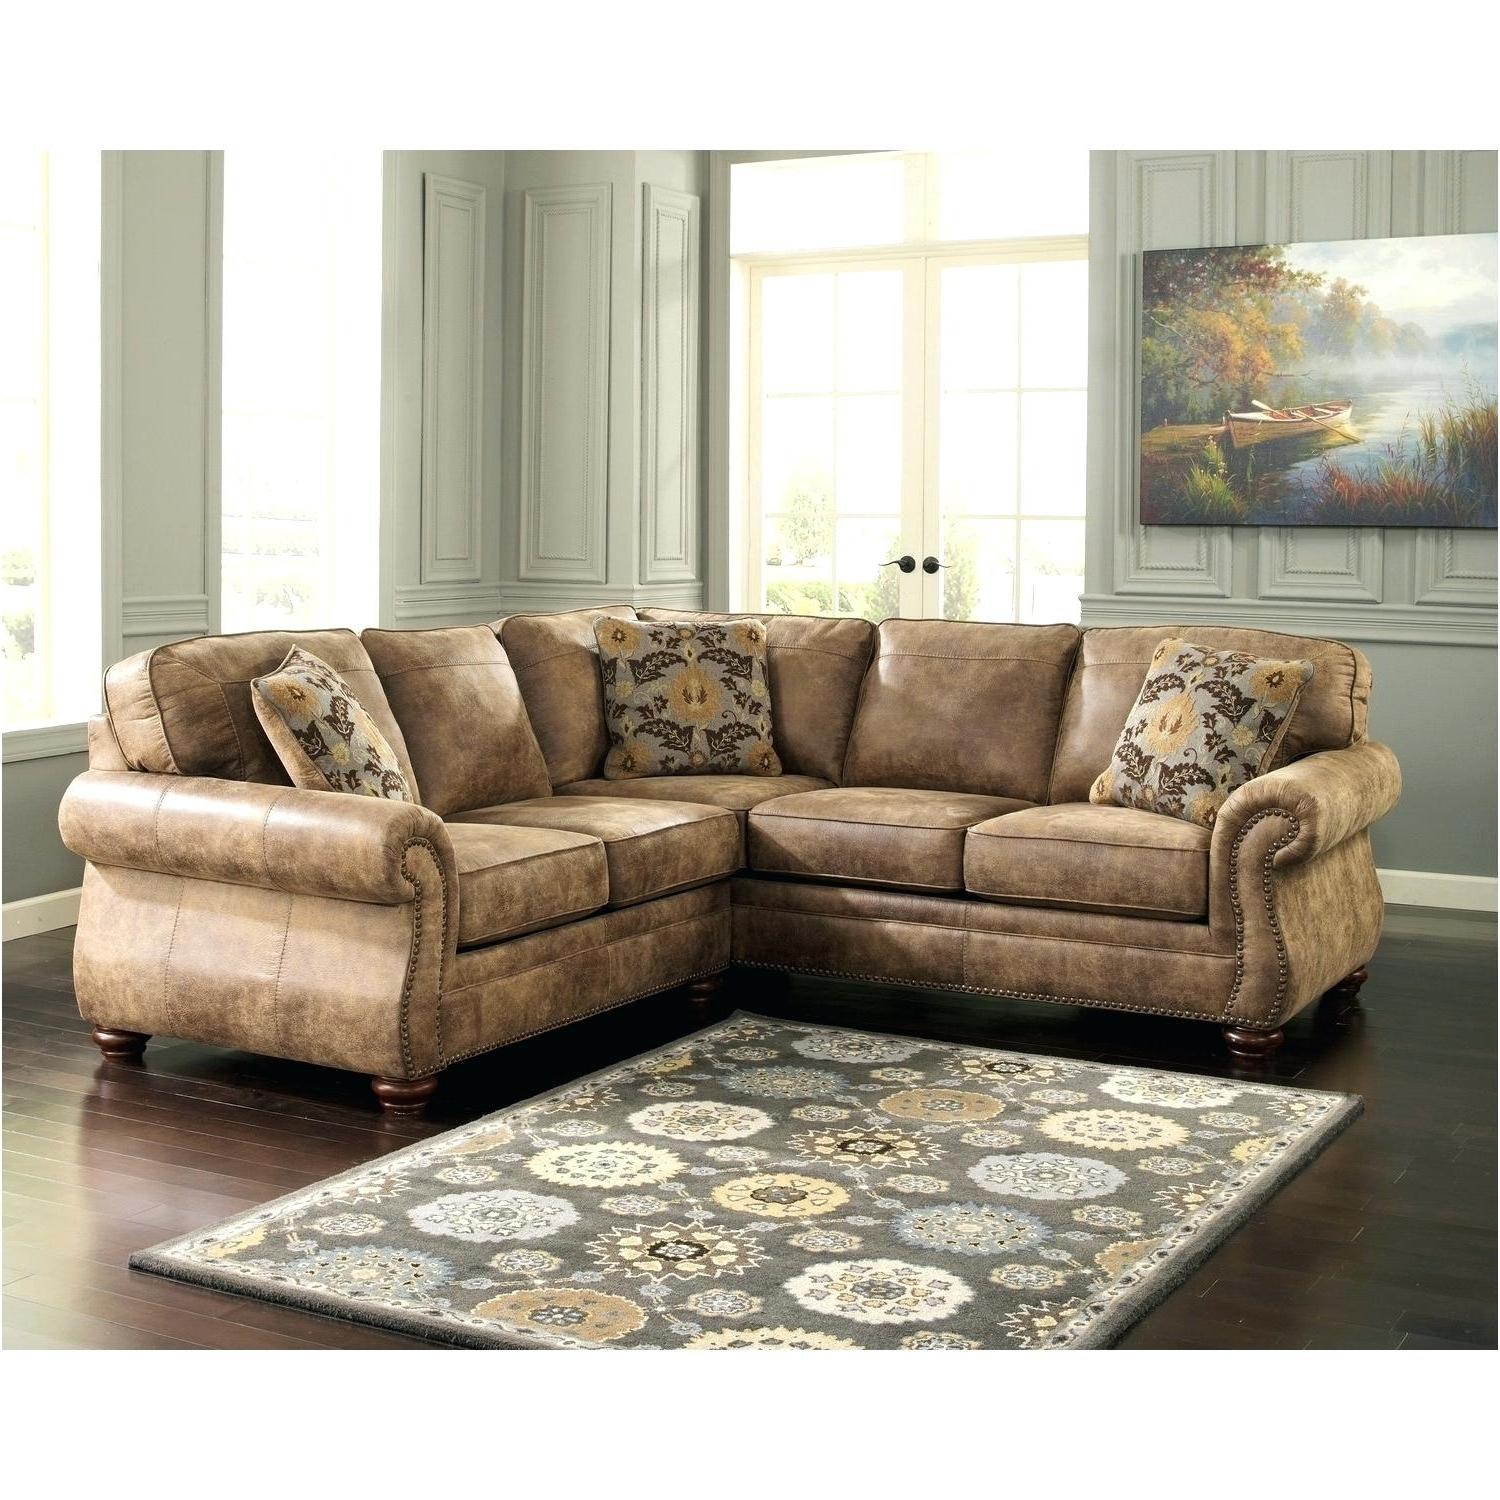 2018 Sectionals Sofa S Sofas Ikea For Sale Sectional Small Spaces Within Joplin Mo Sectional Sofas (View 4 of 15)